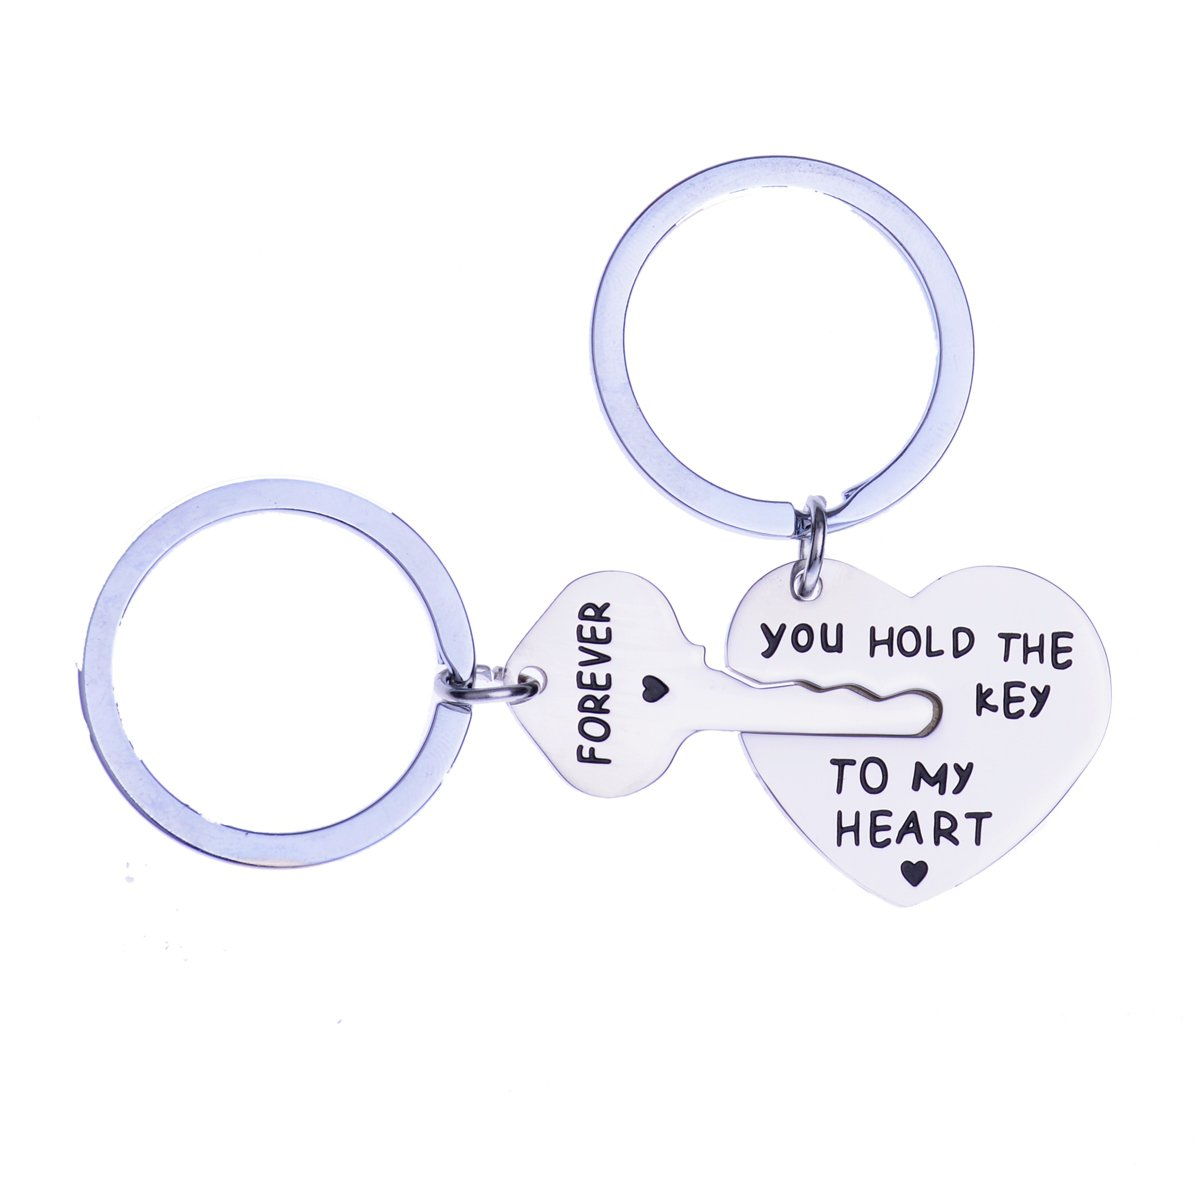 YEEQIN Valentines Gifts for Girlfriend Boyfriend You Hold The Key to My Heart Forever Couple Keychain Husband Wife Love Keychain Key Ring Chain Lover Gift